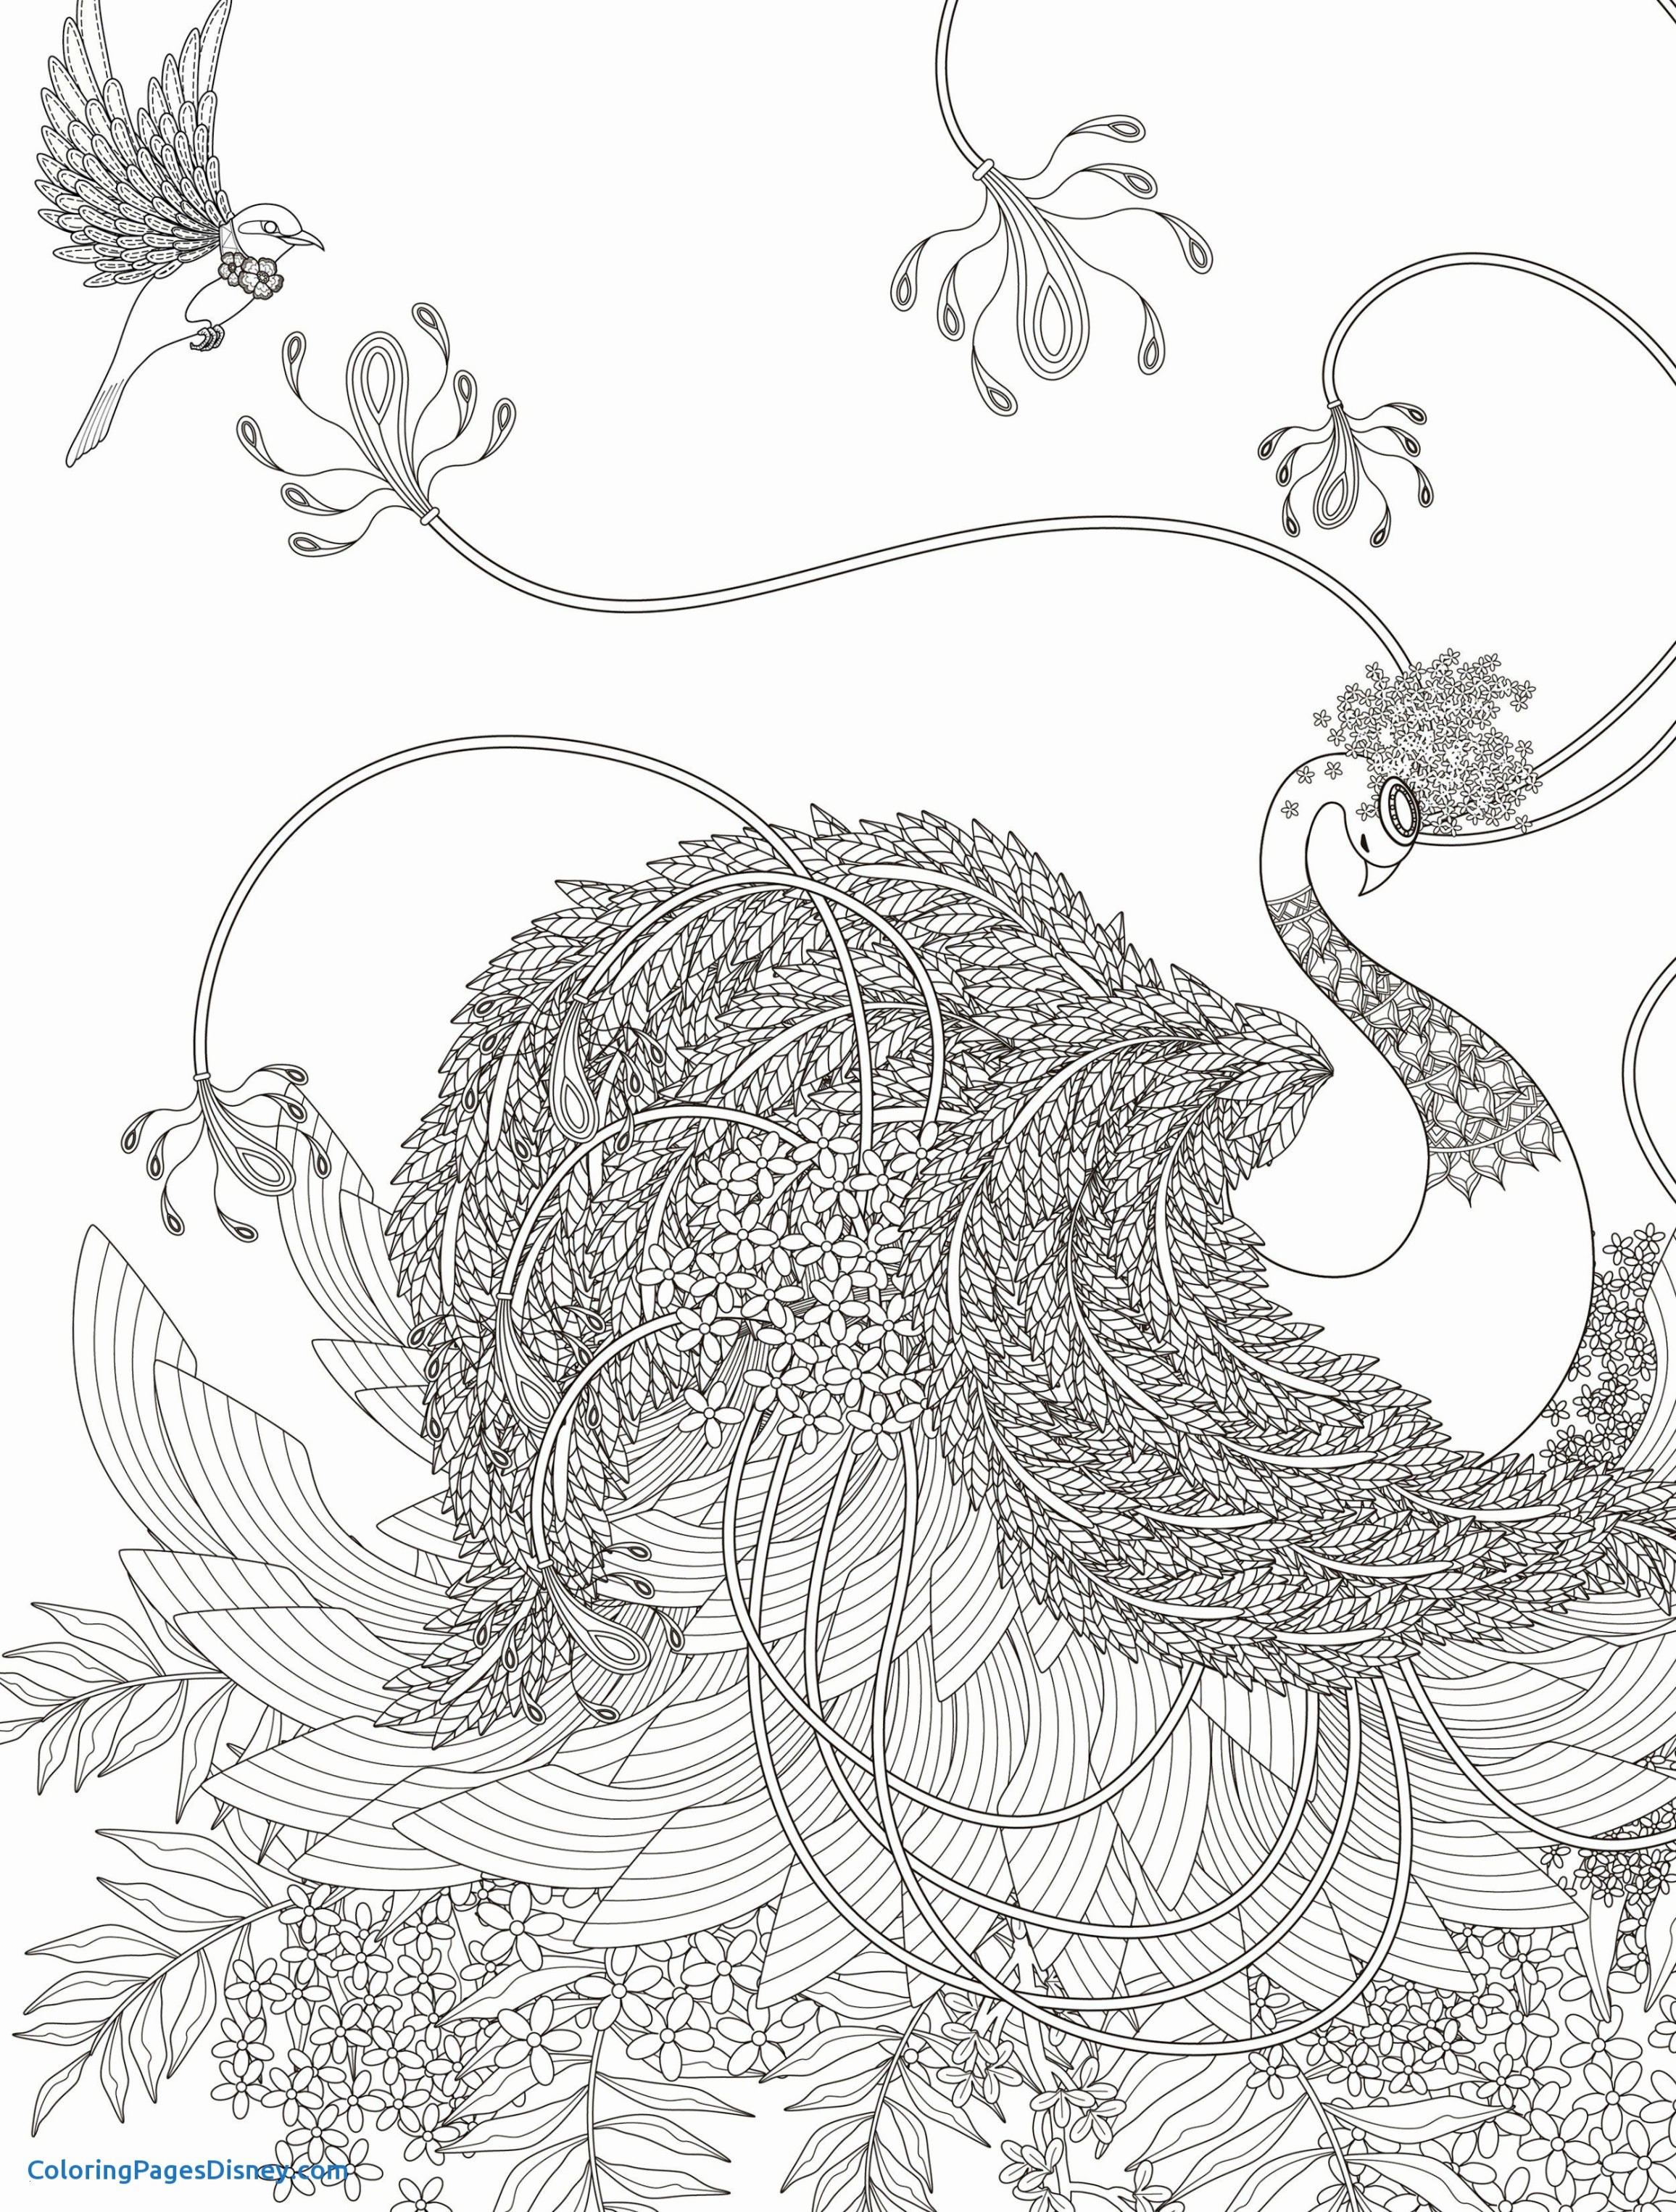 garden of eden coloring pages Collection-Garden Coloring Pages 30 Elegant Garden for Coloring Cloud9vegas 1-q